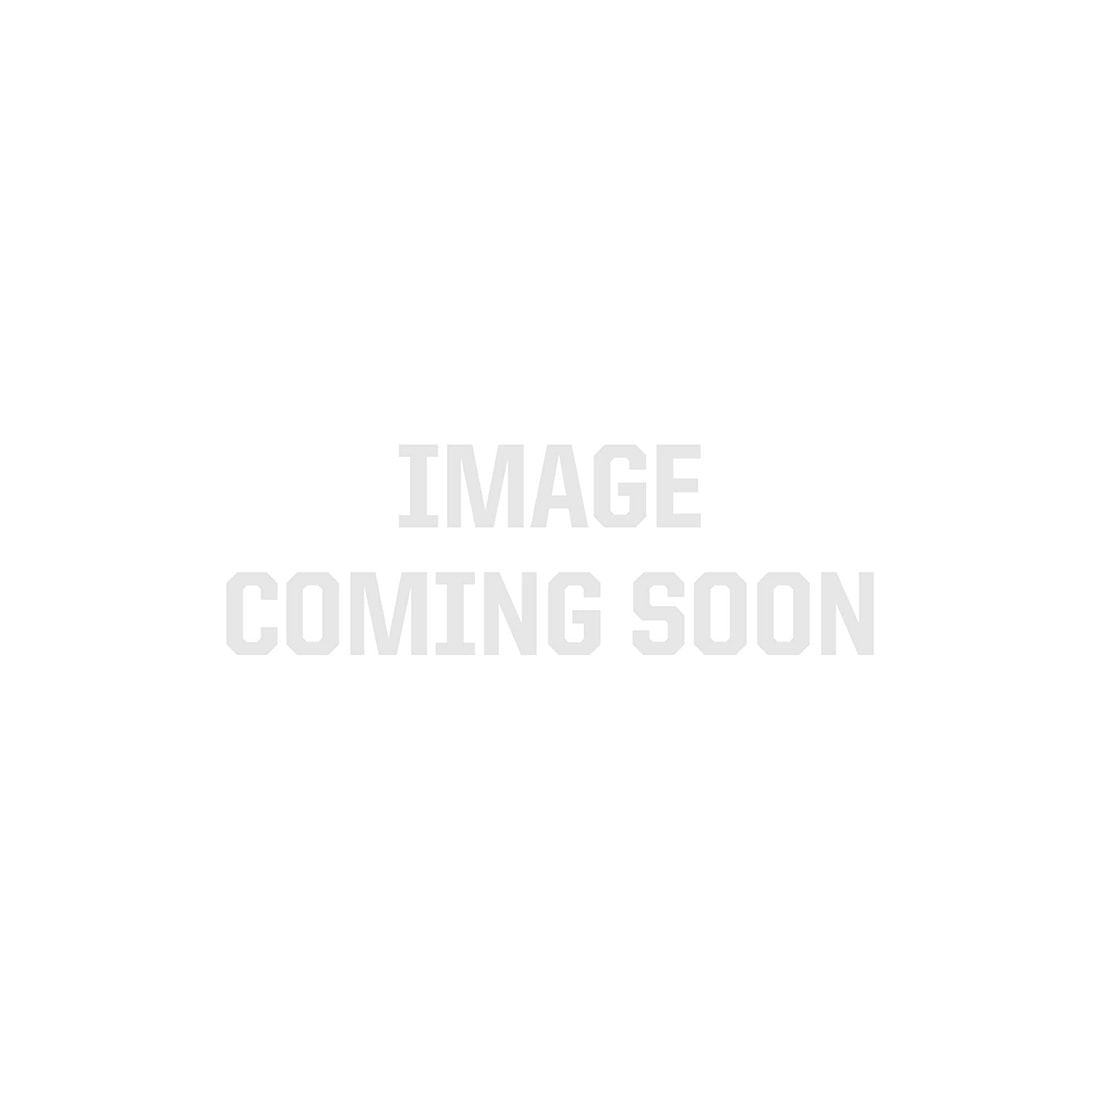 2 Conductor wire - 22 AWG cable, by the foot